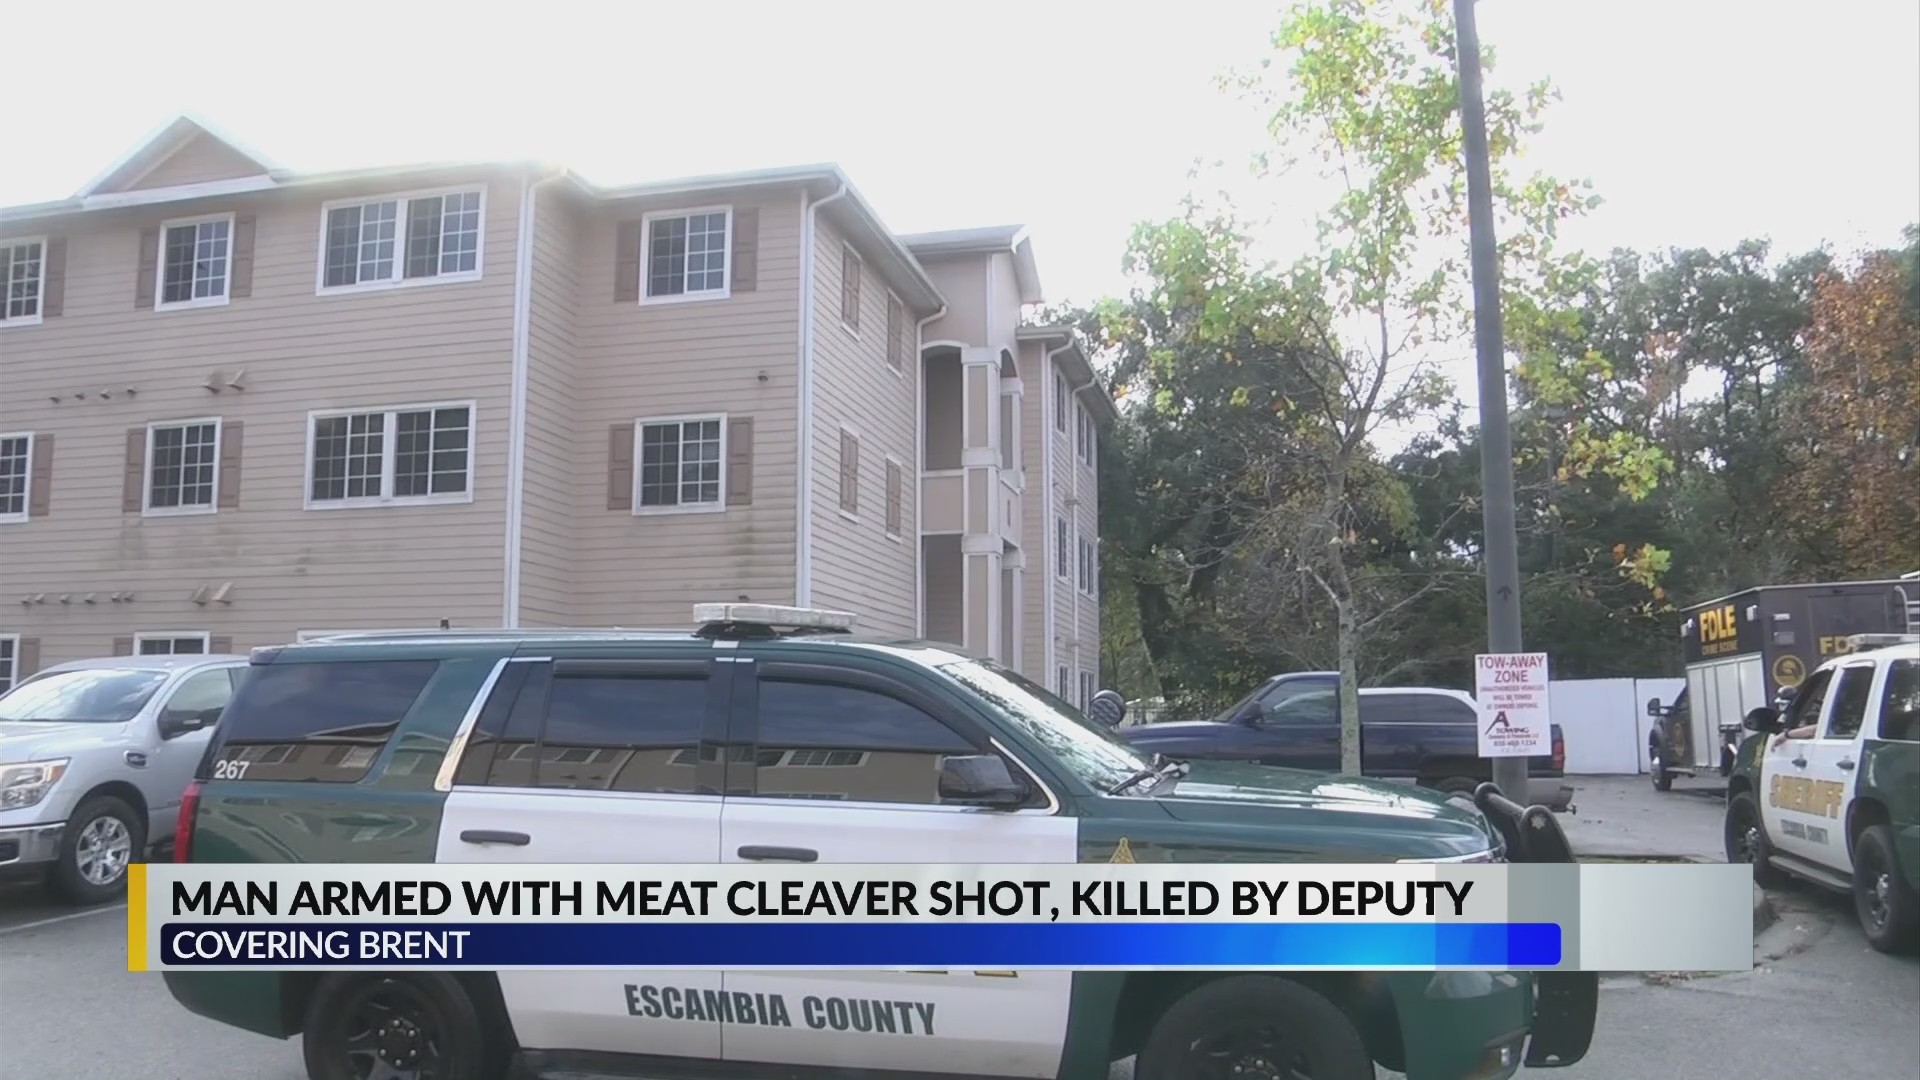 Deputies kill suspect allegedly holding meat cleaver in Escambia County